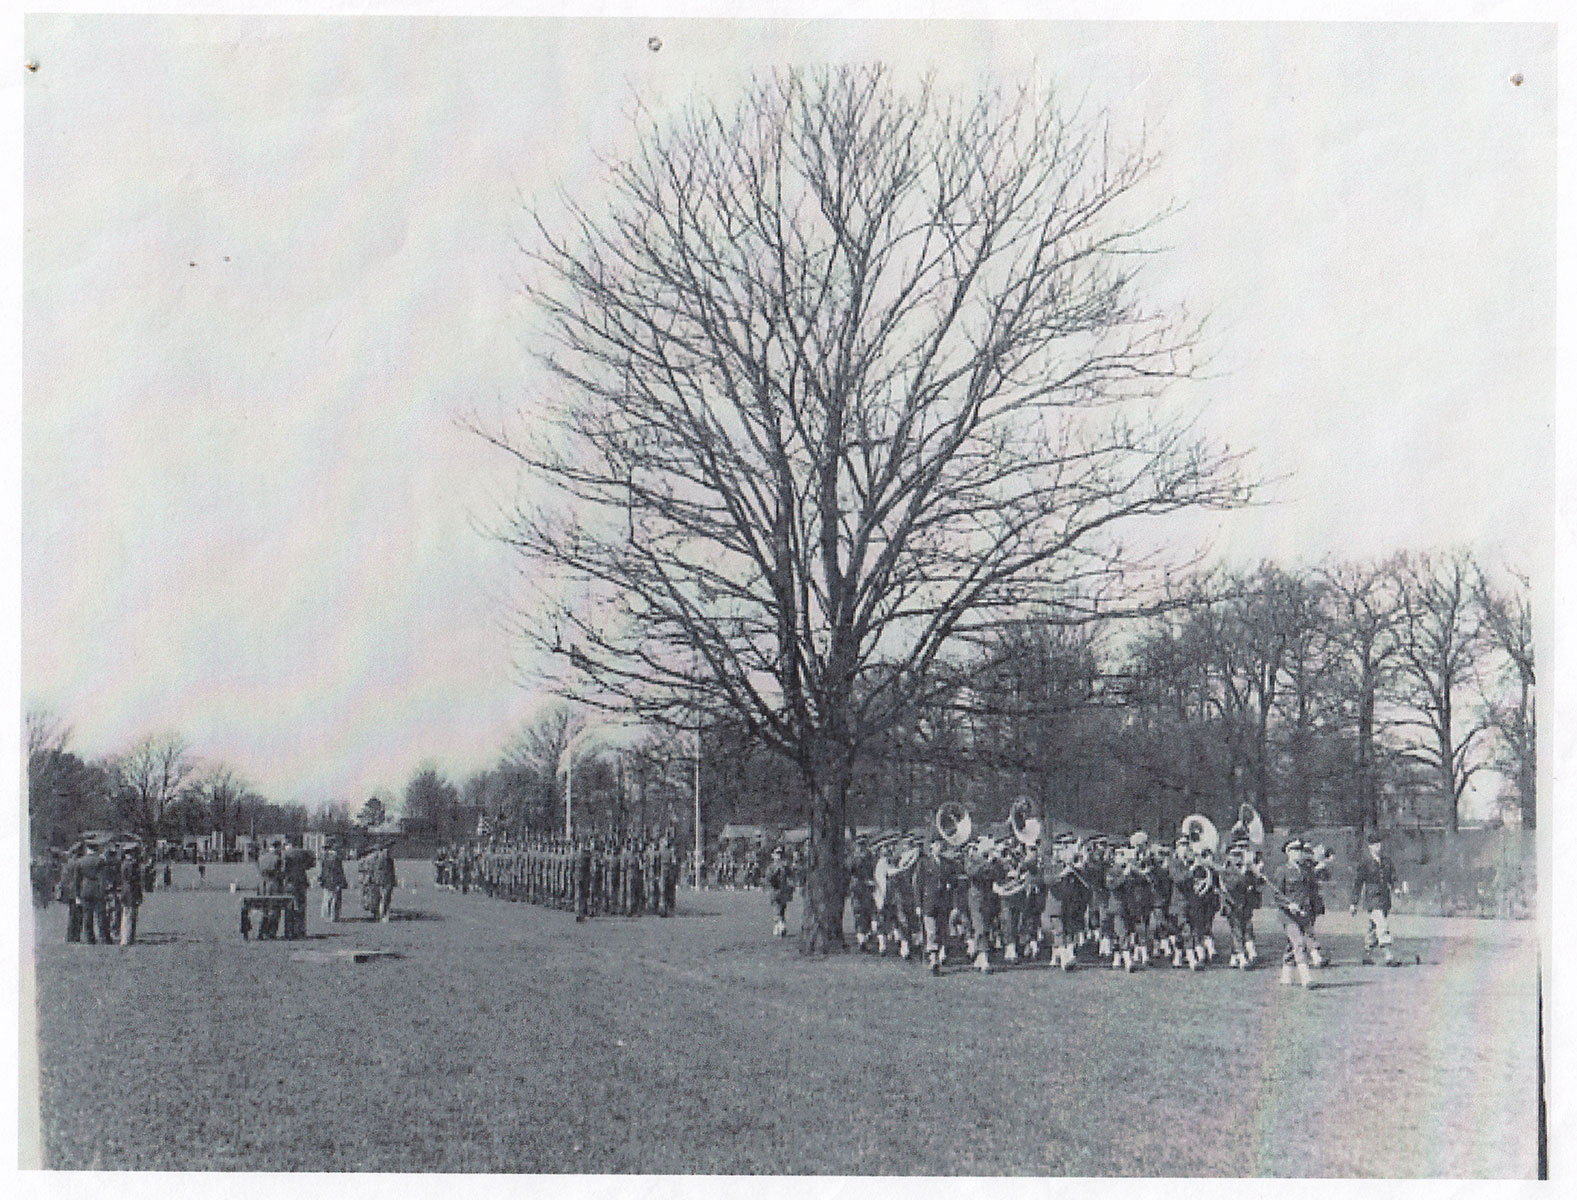 USAF band on parade. Copyright Bushy Park, the Royal Parks